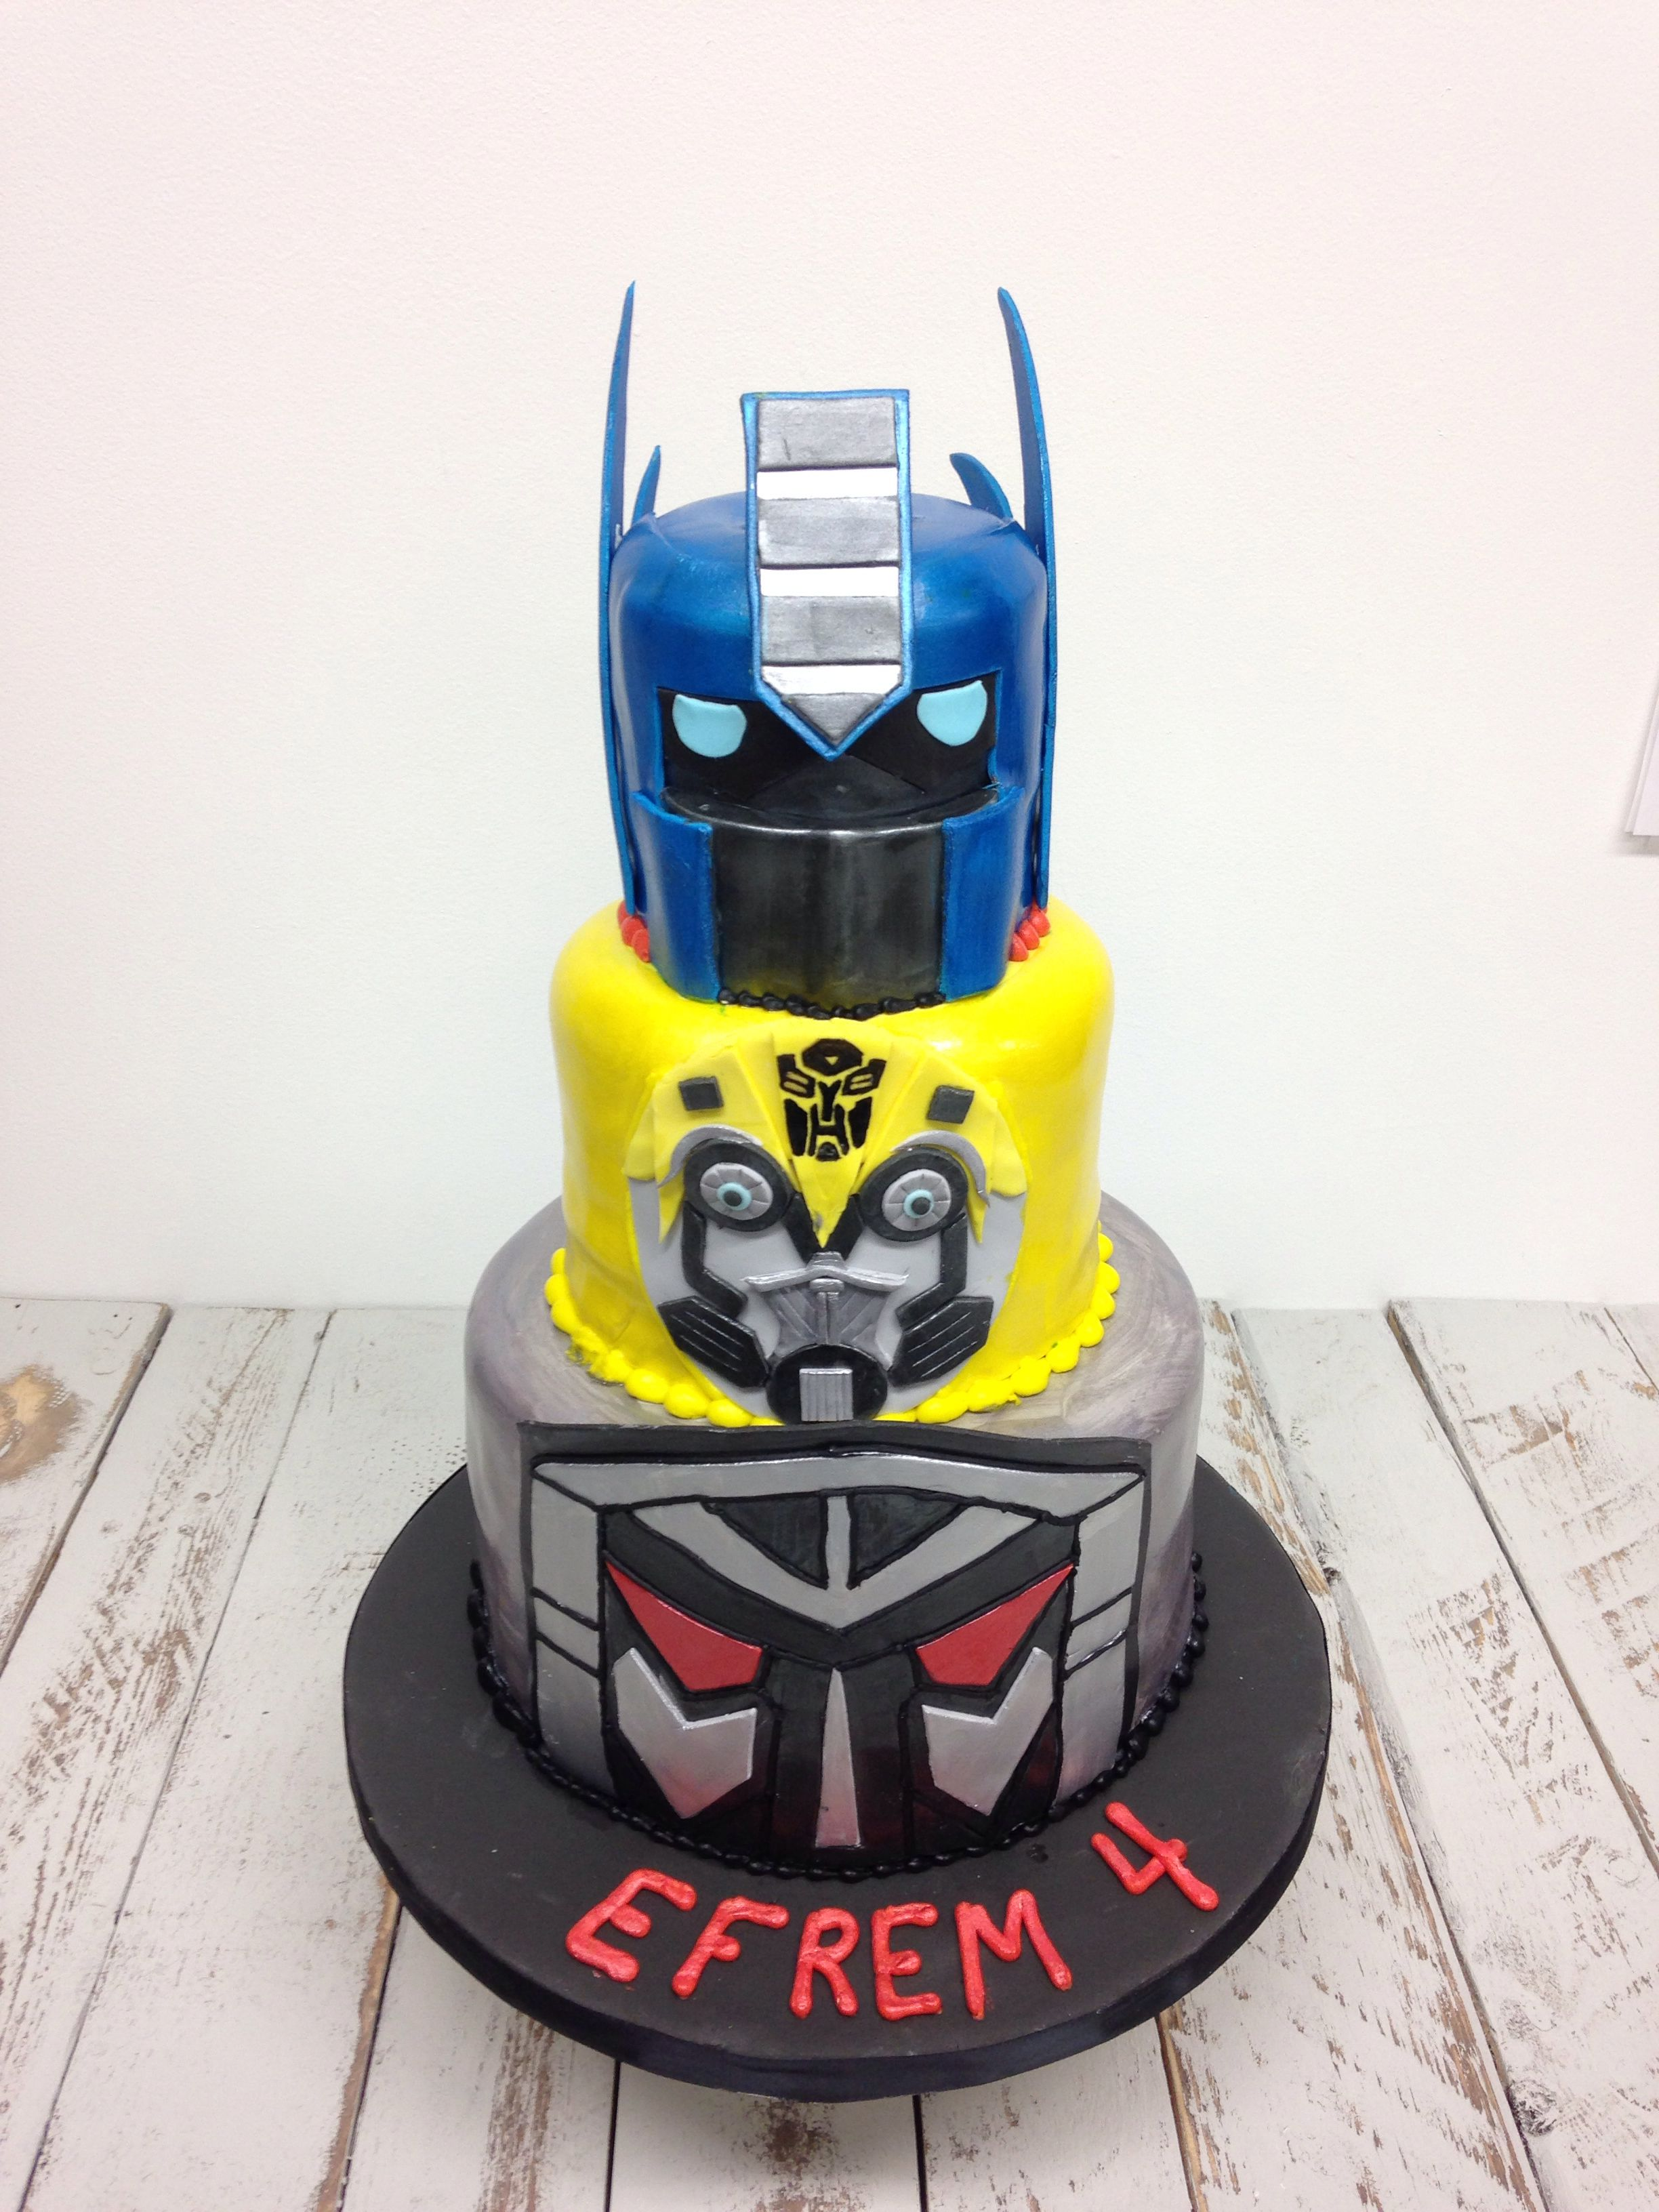 Transformers cake done working with Nashville Sweets.